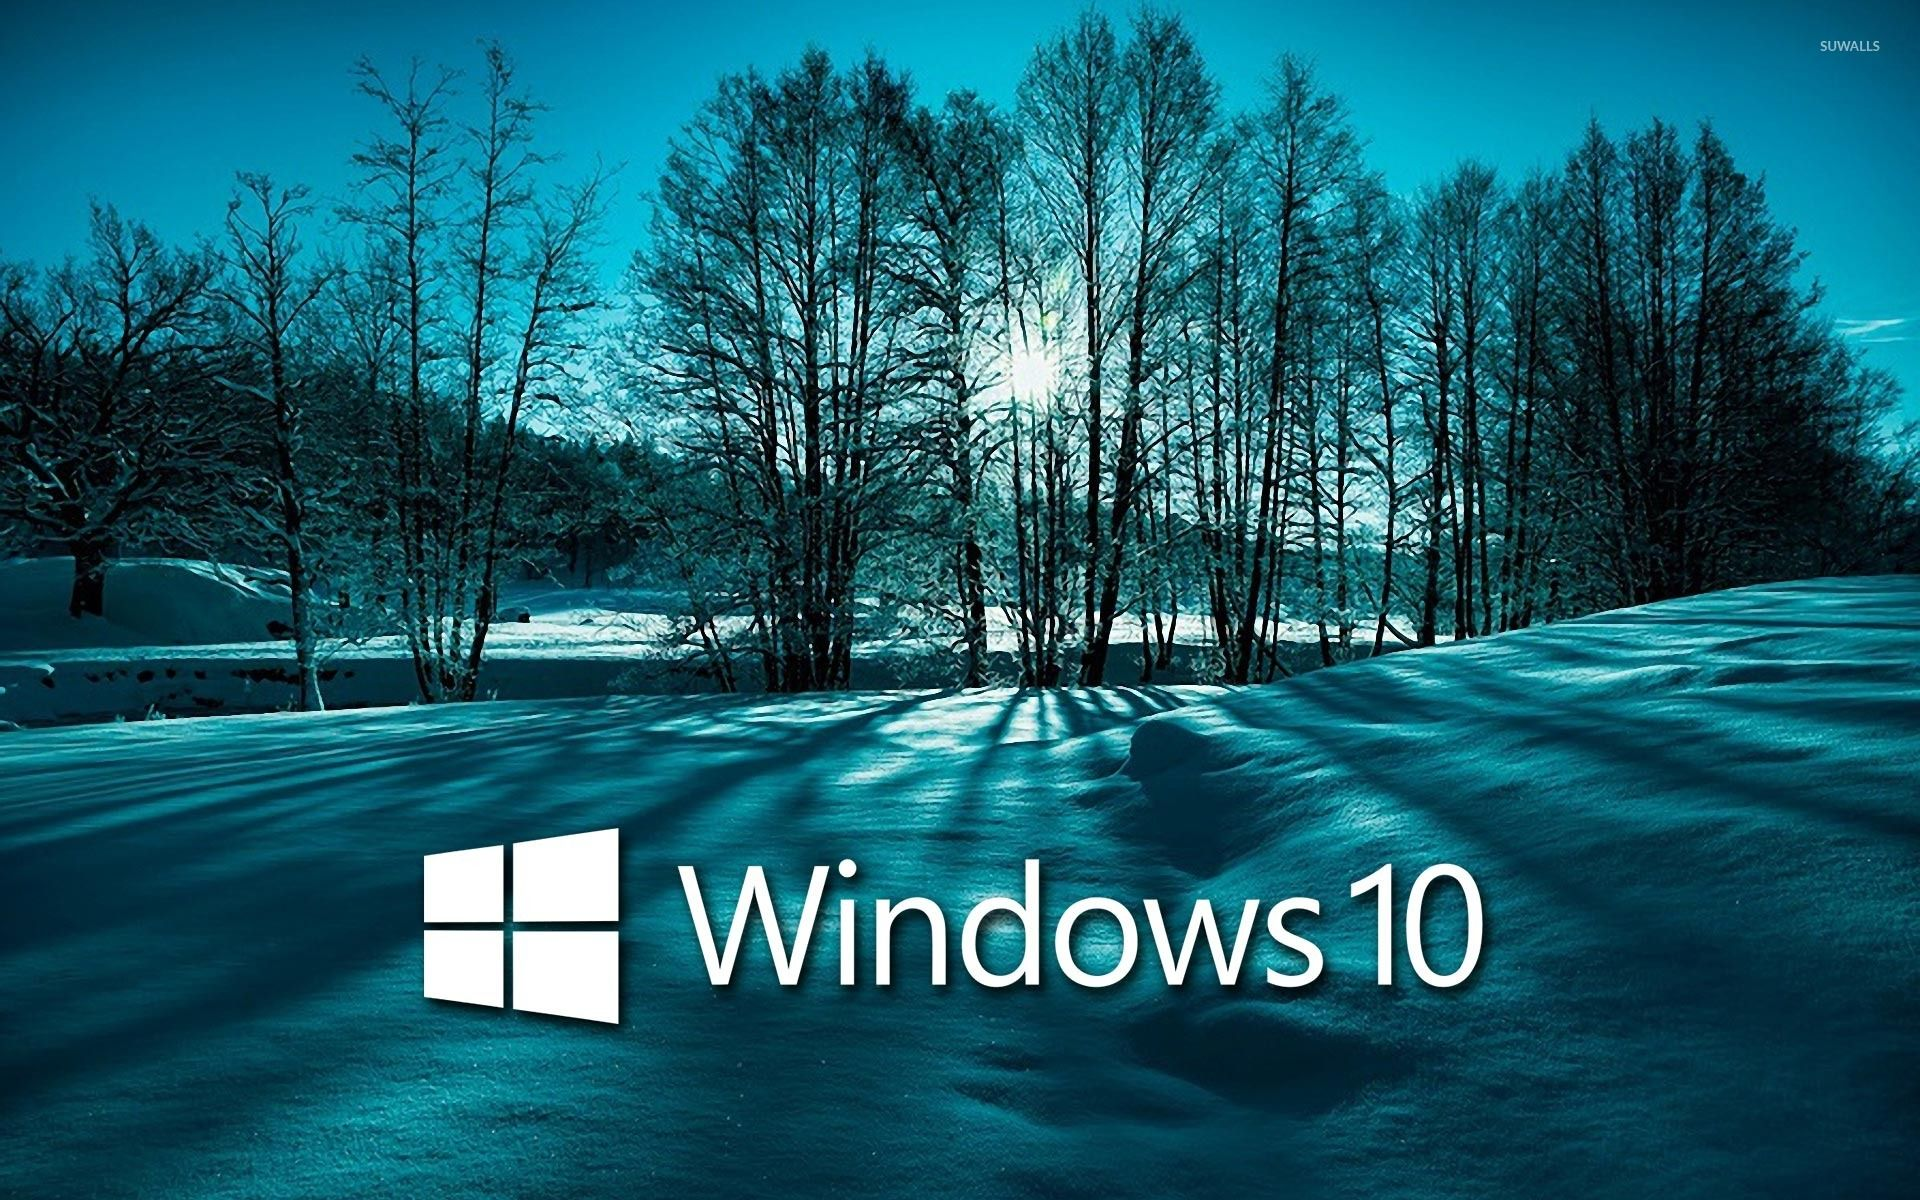 10 Best Windows 10 Wallpapers Free Hd Wallpapers Windows Wallpaper Windows 10 Hd Wallpapers For Laptop